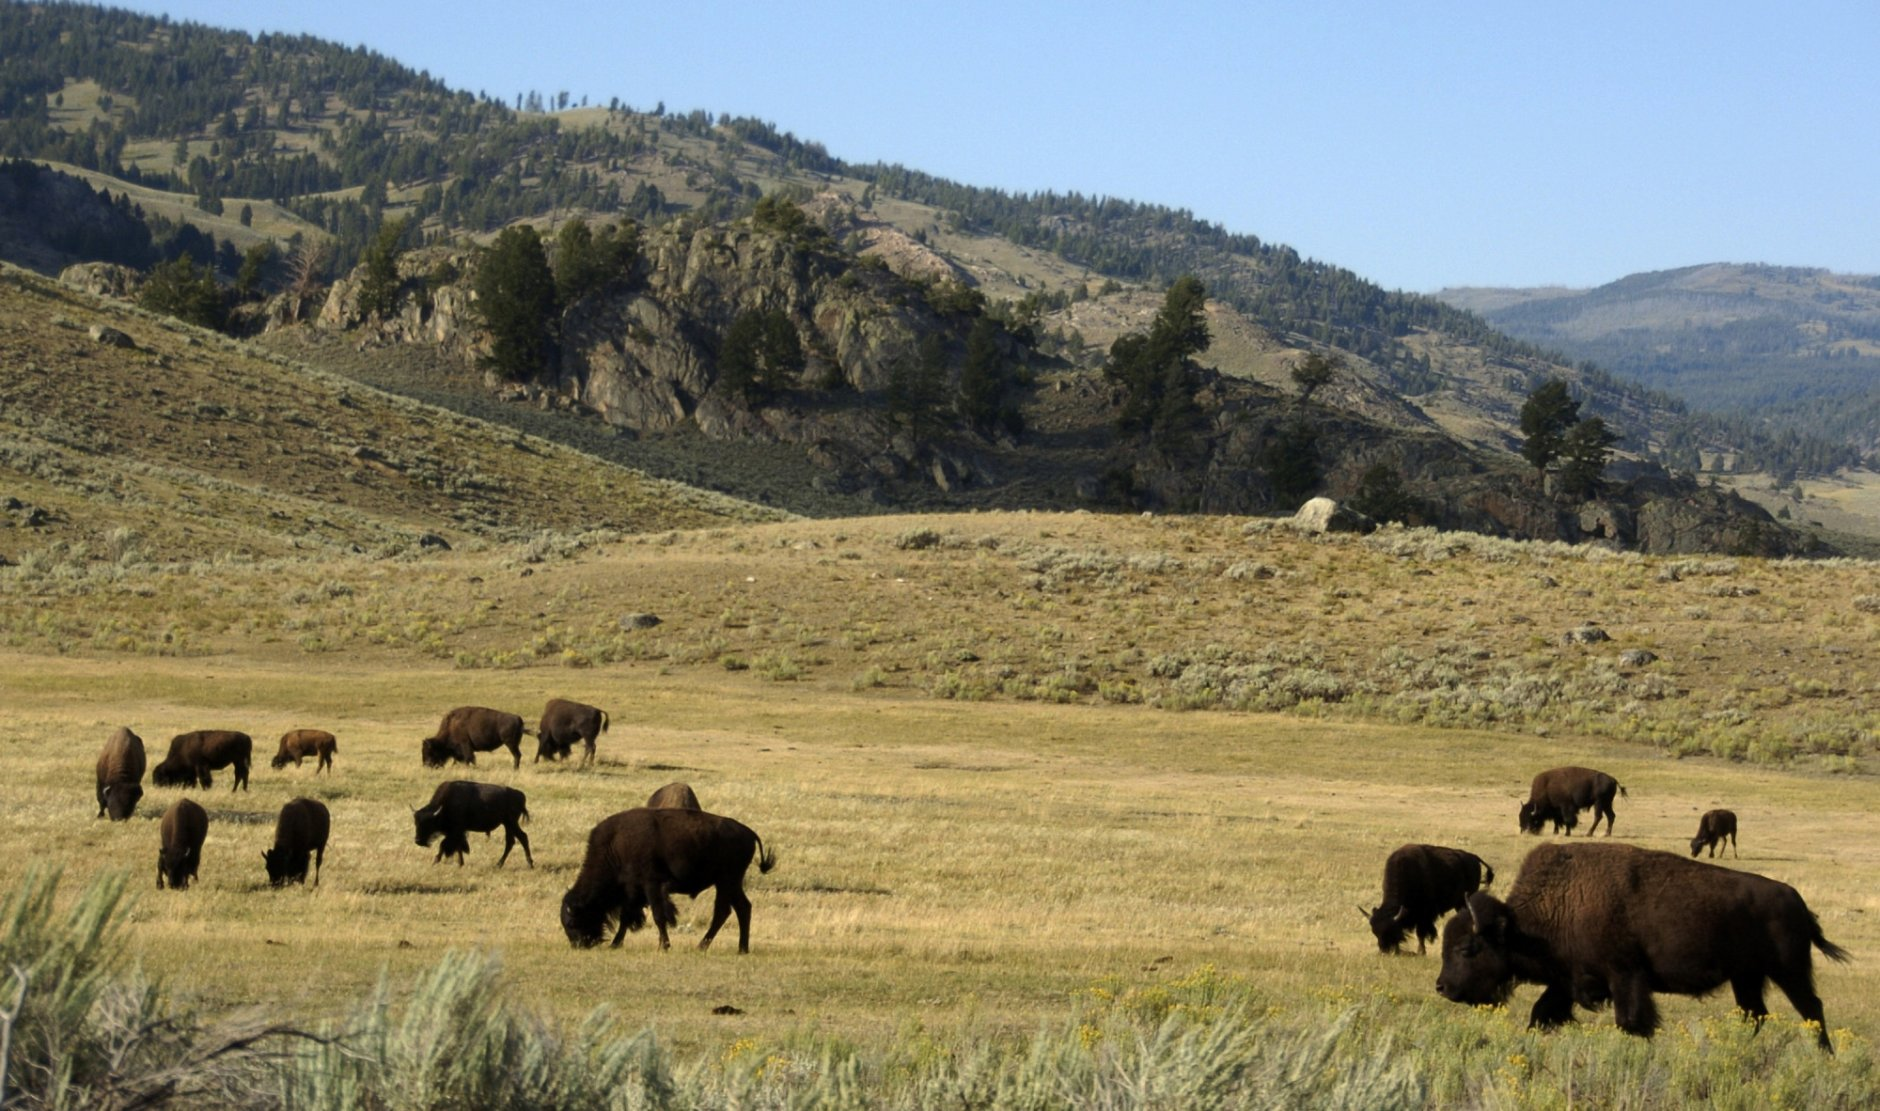 "FILE - In this Aug. 3, 2016 file photo, a herd of bison grazes in the Lamar Valley of Yellowstone National Park. A new superintendent was named Wednesday, June 13, 2018, to Yellowstone National Park, one of the crown jewels of the park system, after his predecessor said he was being forced out by the Trump administration following a dispute over bison. Cameron ""Cam"" Sholly will replace Dan Wenk, who has been superintendent since 2011, according to the Department of Interior.  (AP Photo/Matthew Brown, File)"